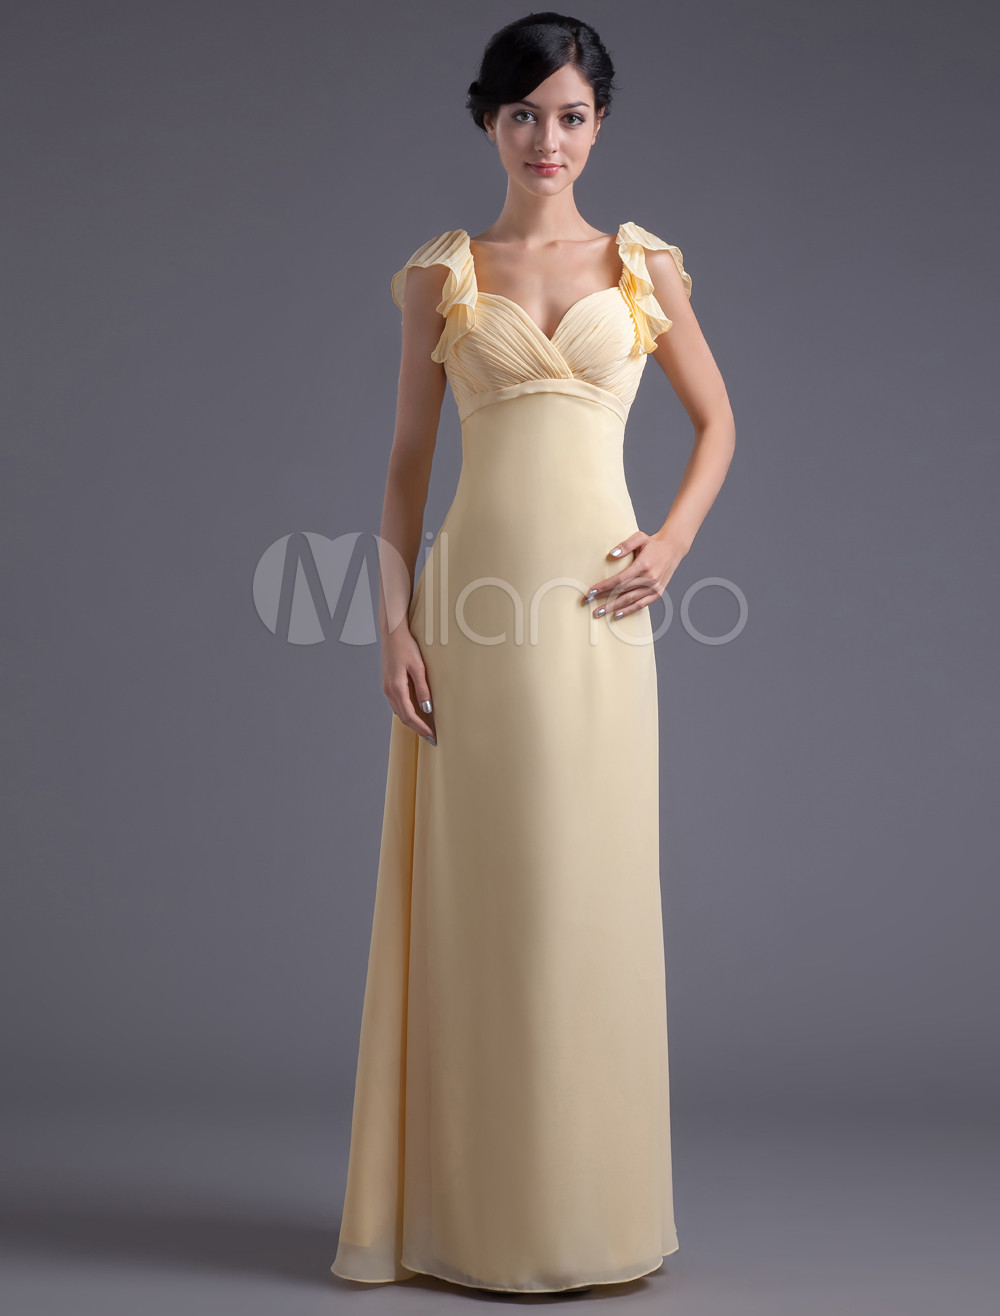 Sheath Daffodil Chiffon Floor-Length Bridesmaid Dress For Wedding